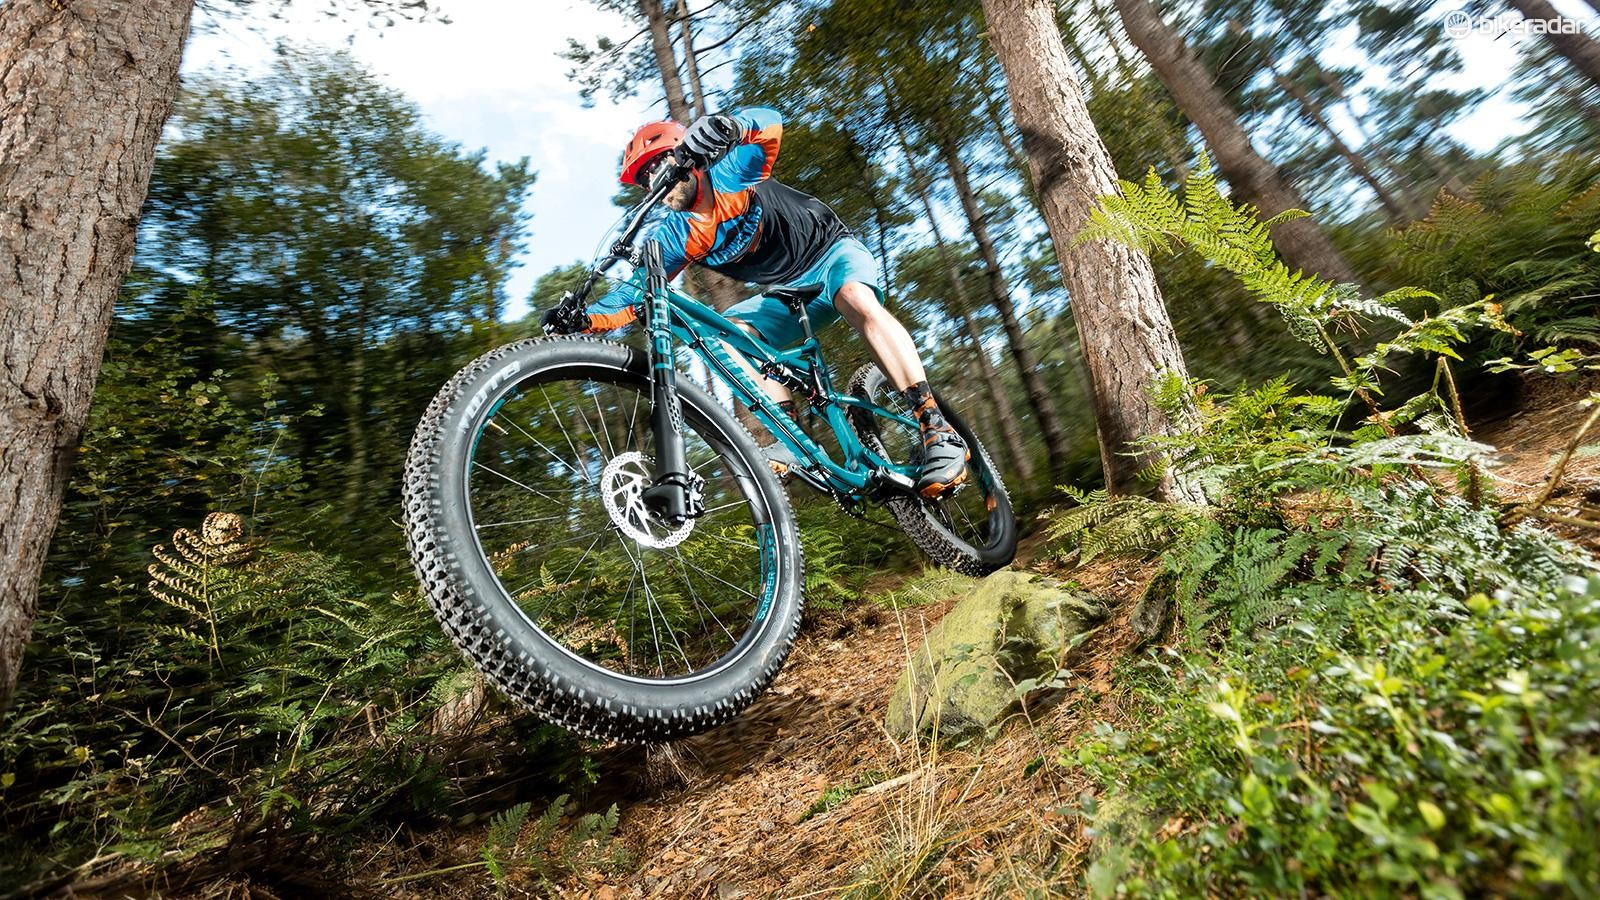 The bigger volume and lower pressures of the tyres shrink rocks, roots and ruts, making riding on technical terrain fast